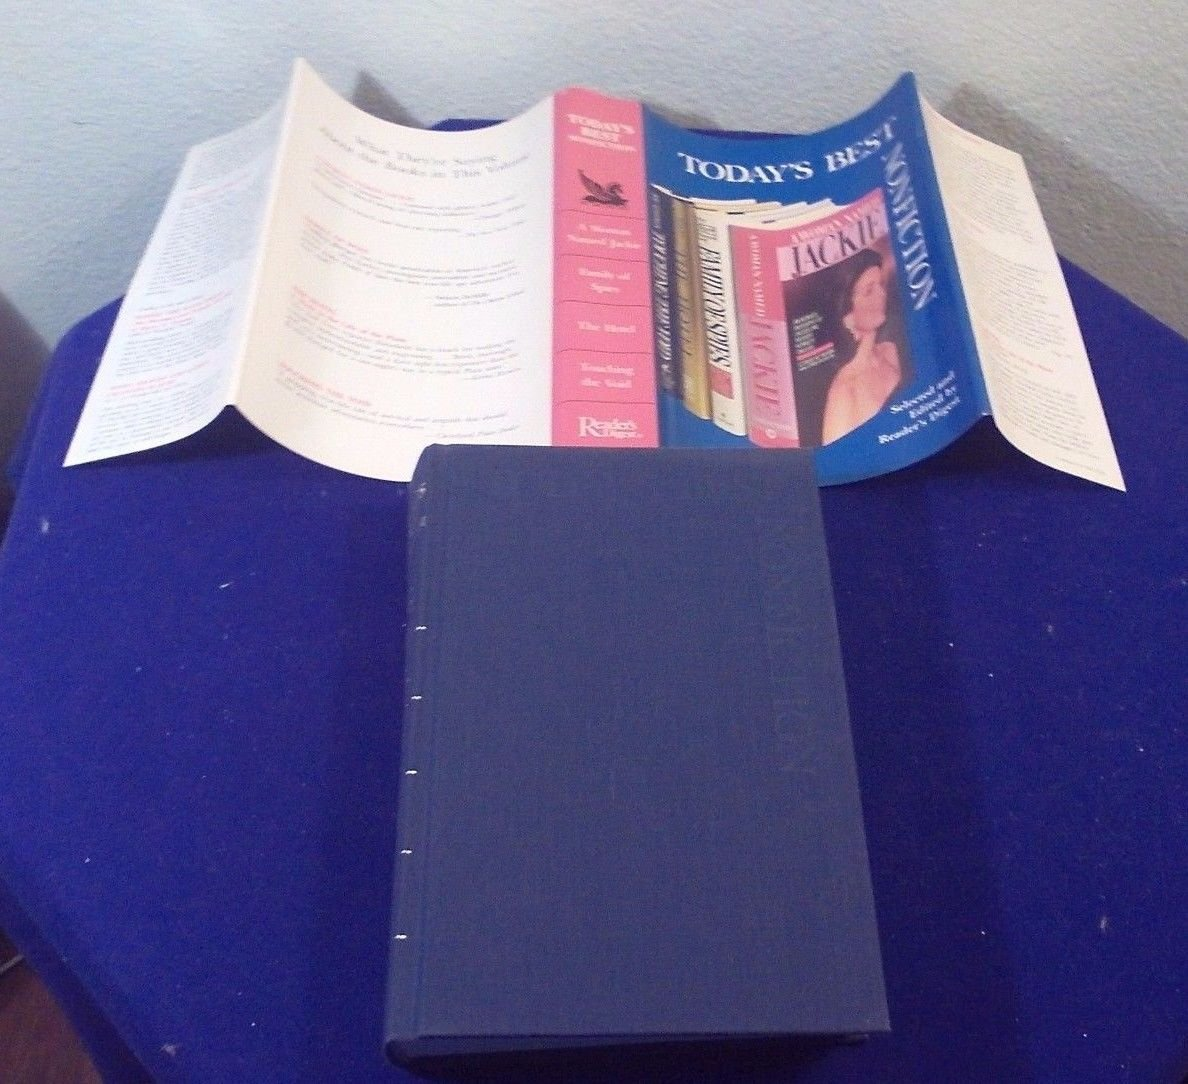 1989 READERS DIGEST TODAYS BEST NONFICTION VOL. 6 Hardcover Book Hardcover – January 1, 1989